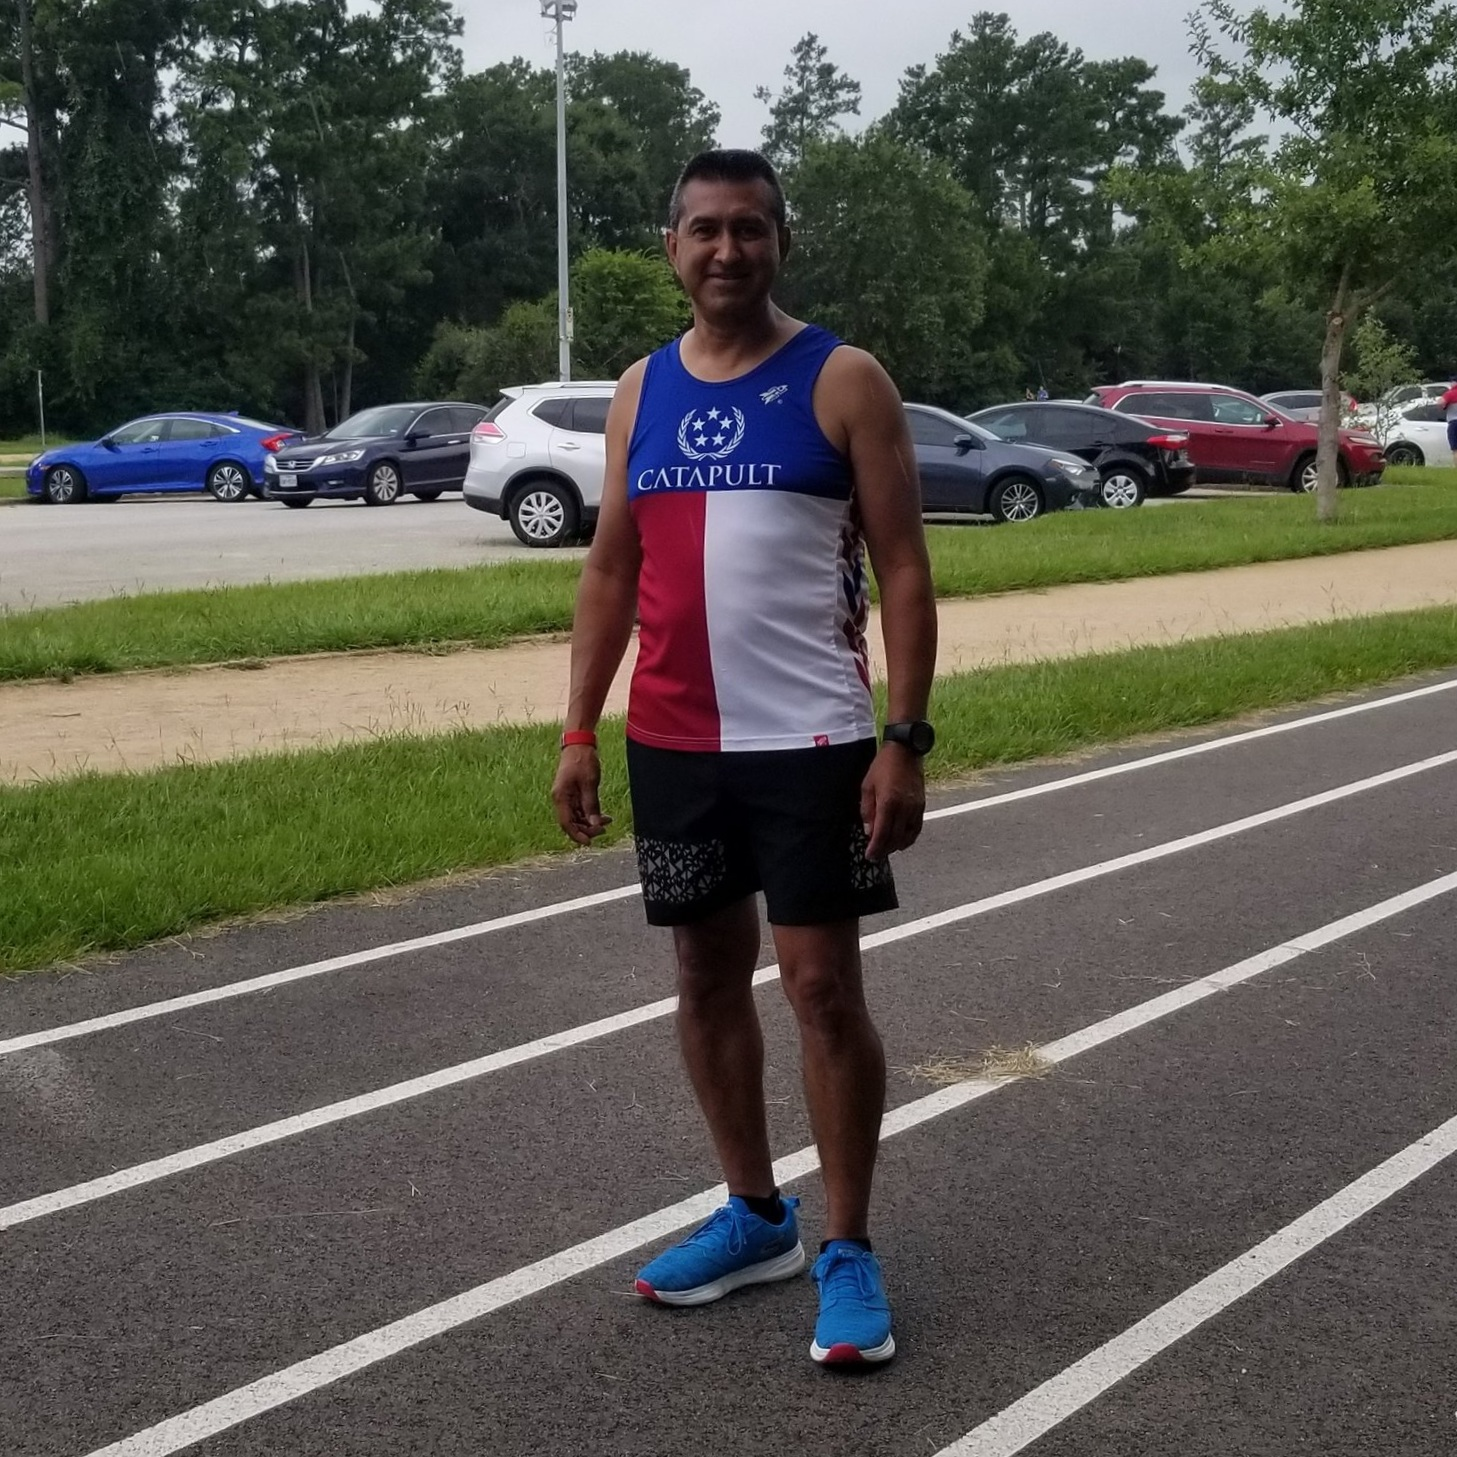 Victor Santos (Guide) - I'm Texas-born but grew up in Mexico and moved to Houston when I was about ten years old. I've always loved the outdoors and have been very active in running, cycling, swimming and have climbed a few 14,000 peak mountains with my sons! My achievements include numerous 5K's, 10K's, three 10 milers, nine half marathons, one 50 miler, one 55 miler, five 200 mile relays, and a sprint triathlon. In 2016 I learned about Team Catapult and decided to join as a volunteer and guide. Since then, I've guided VI athletes in 10K's, The Woodlands Half, The Chevron Houston Half, and the 200 mile Texas Independence Relay! I love helping our athletes achieve their goals, and love to see the sheer joy on their faces!